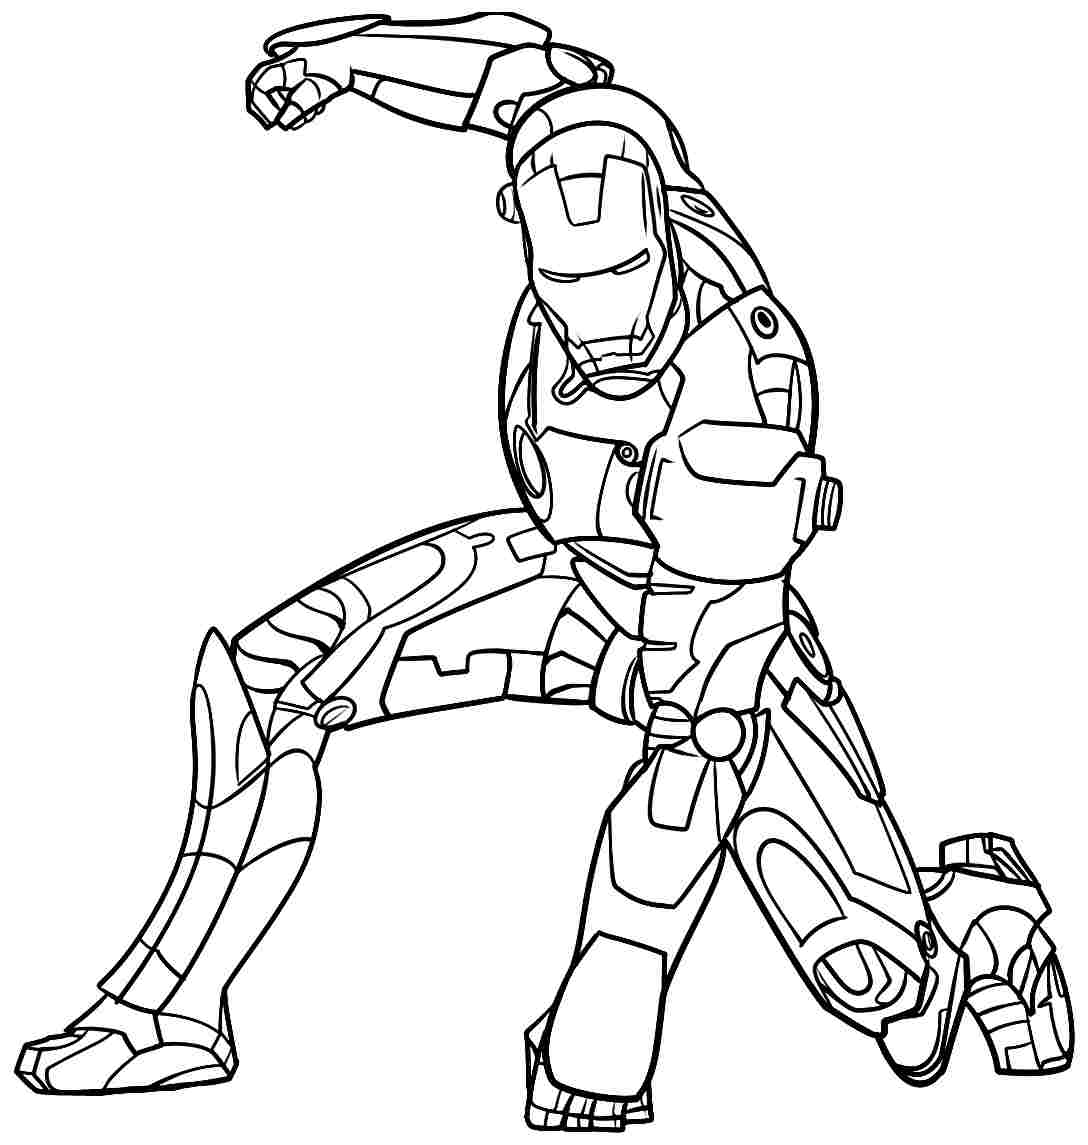 1088x1145 Focus Lego Iron Man Coloring Pages To Print Pa